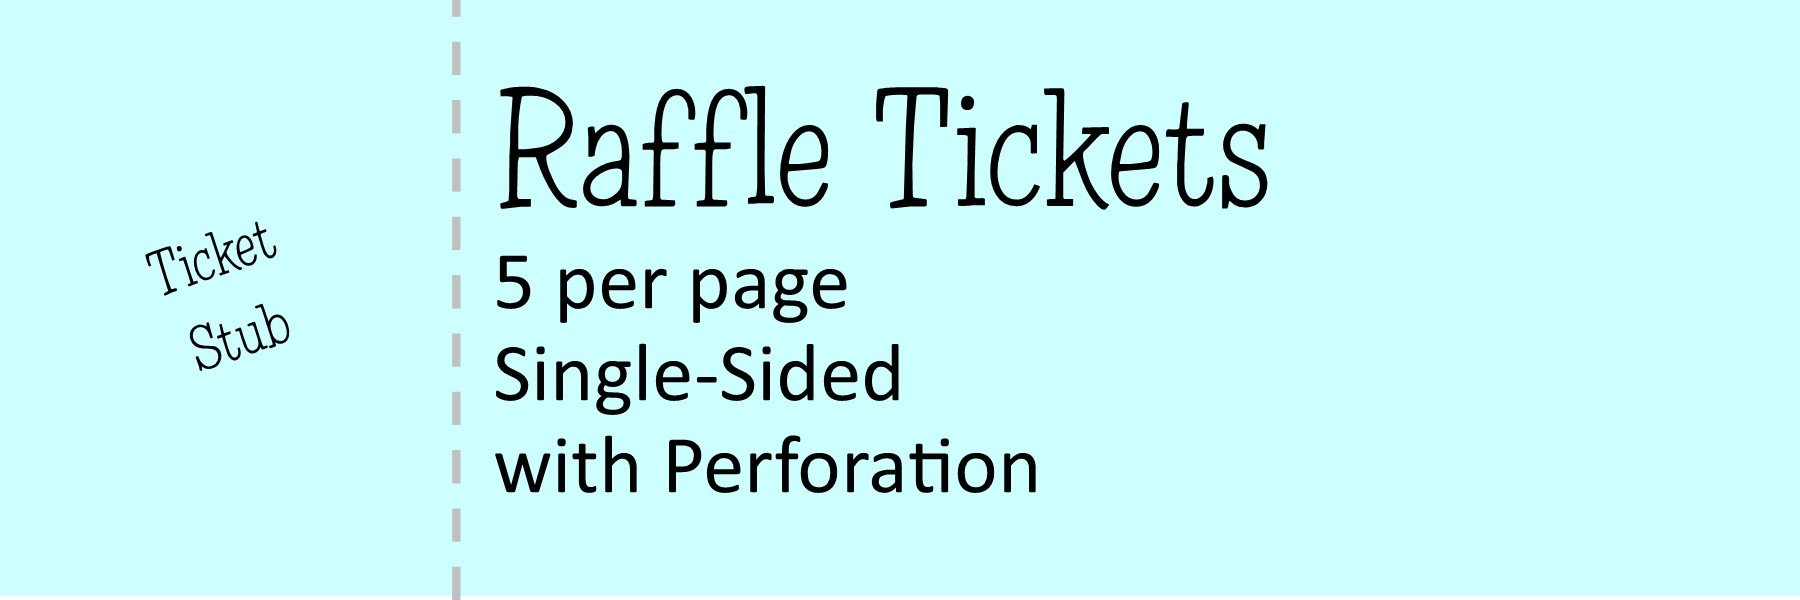 Raffle Tickets 5 per page - (Single-Sided) With Perforation & NO Numbering